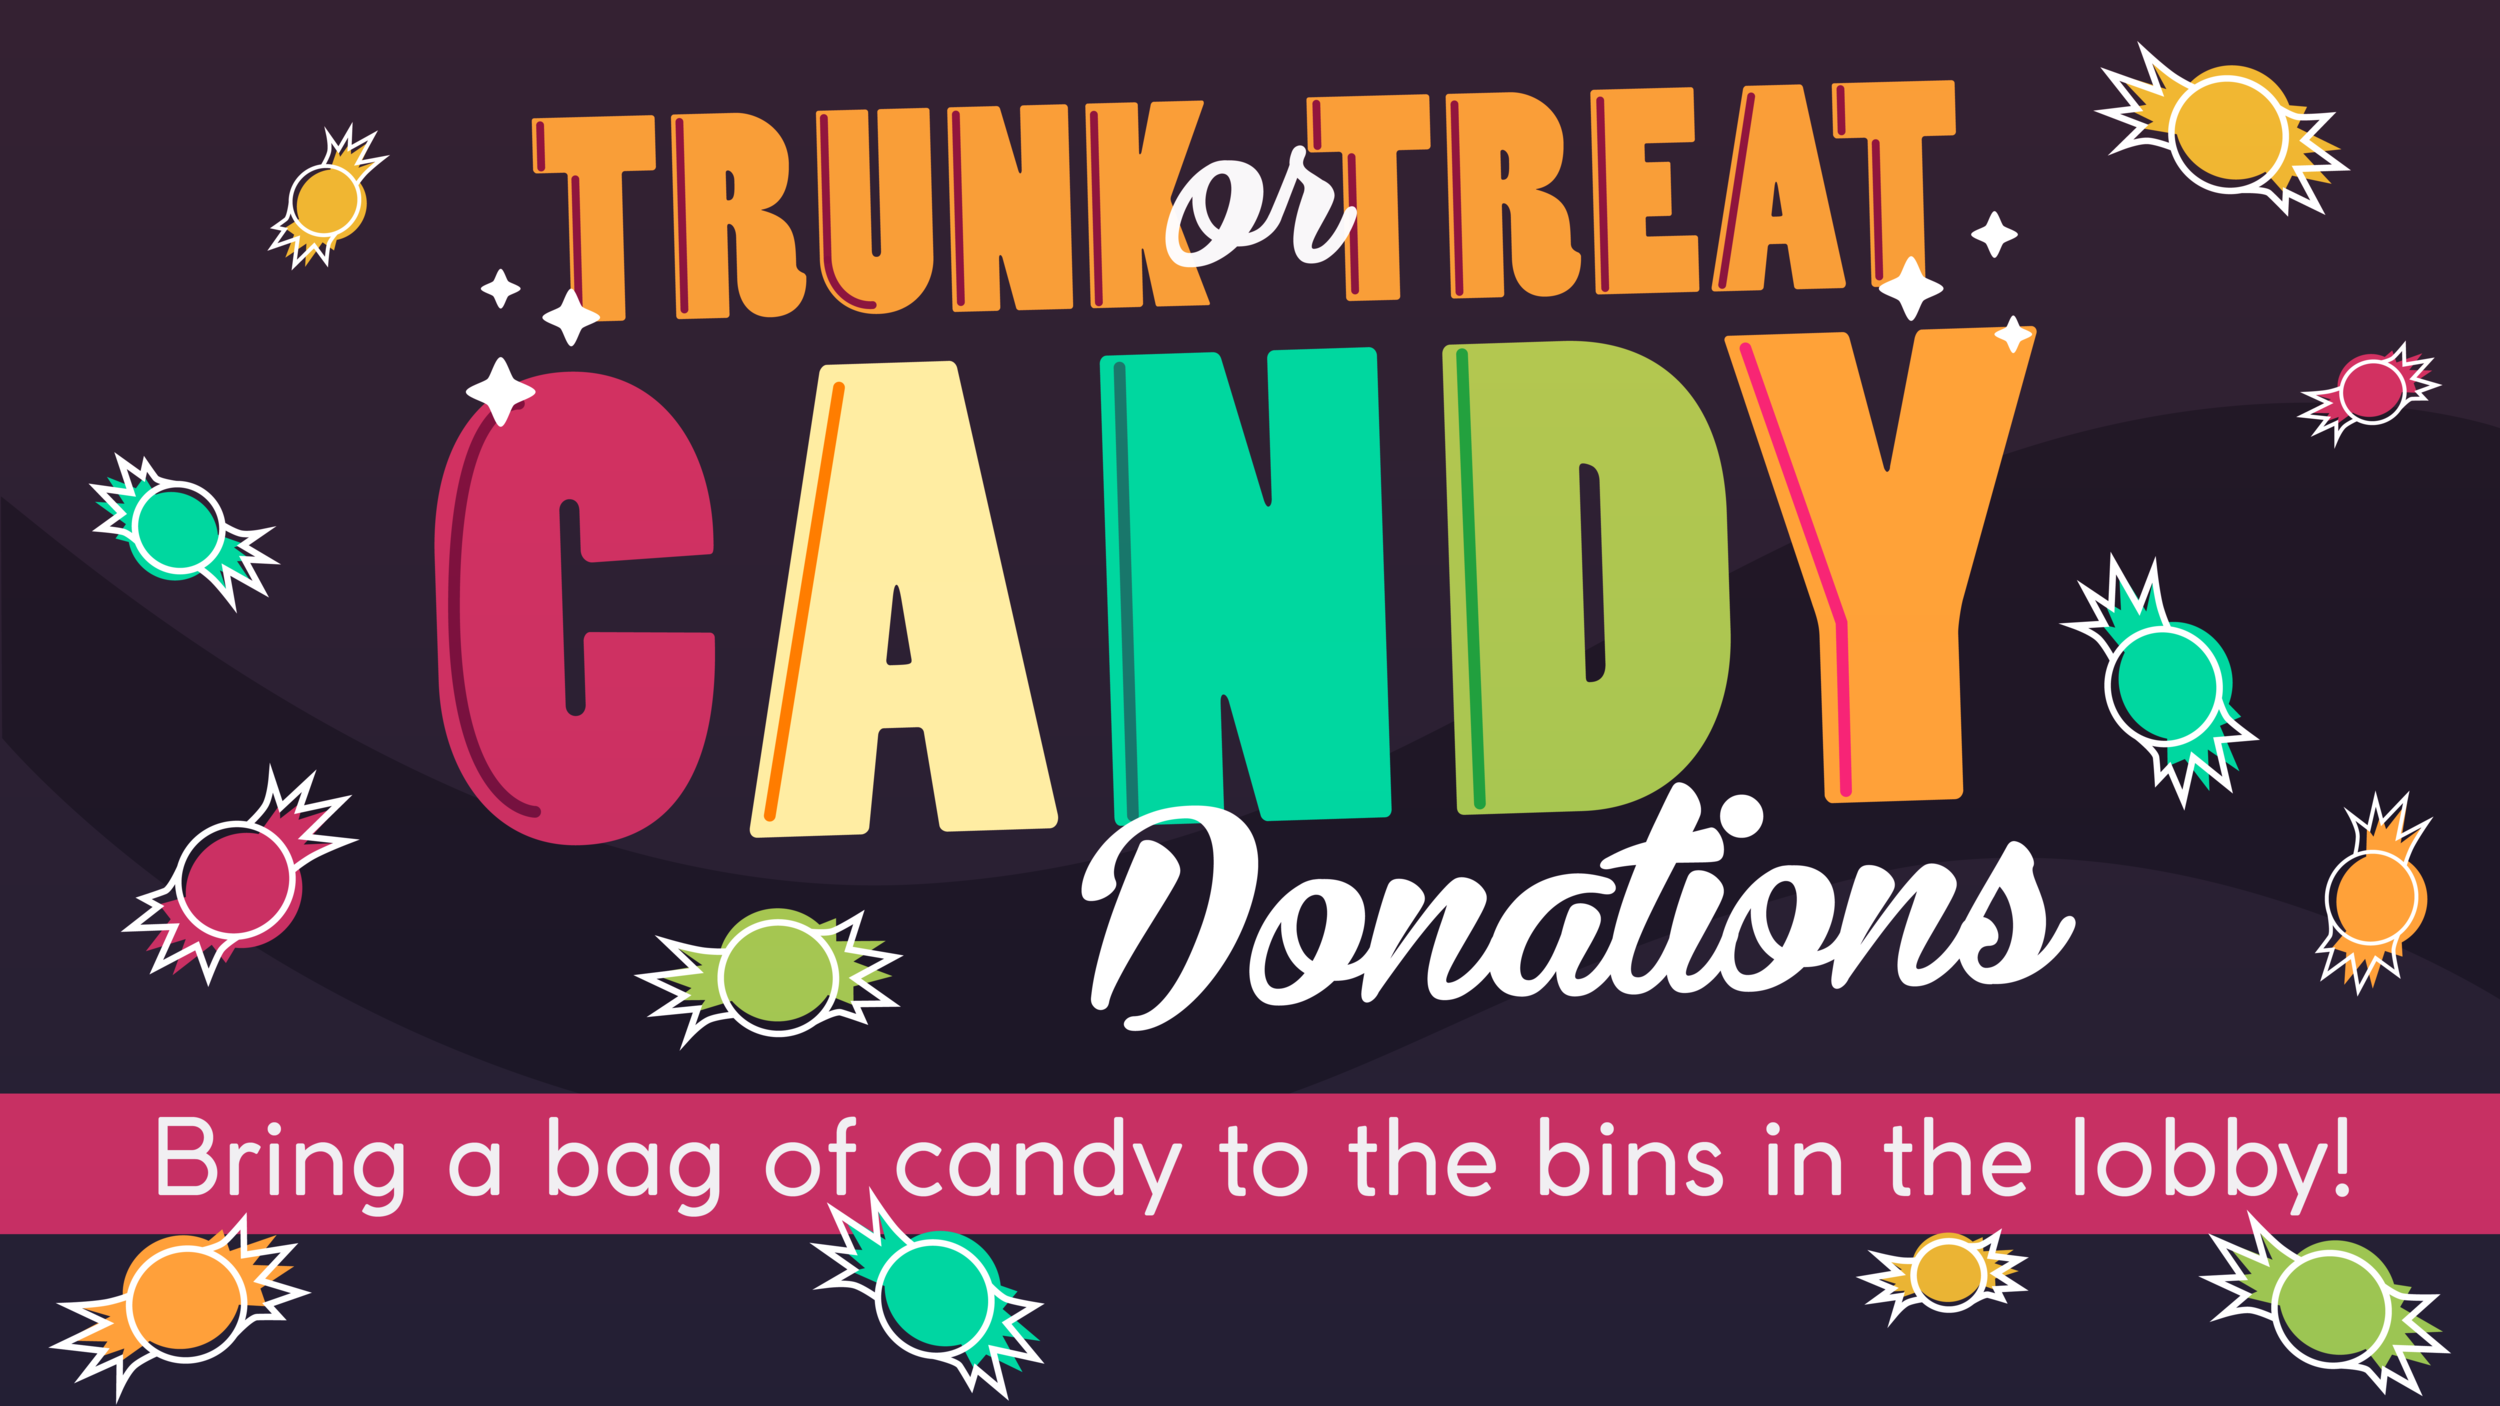 trunk.treat.candy.donations.png